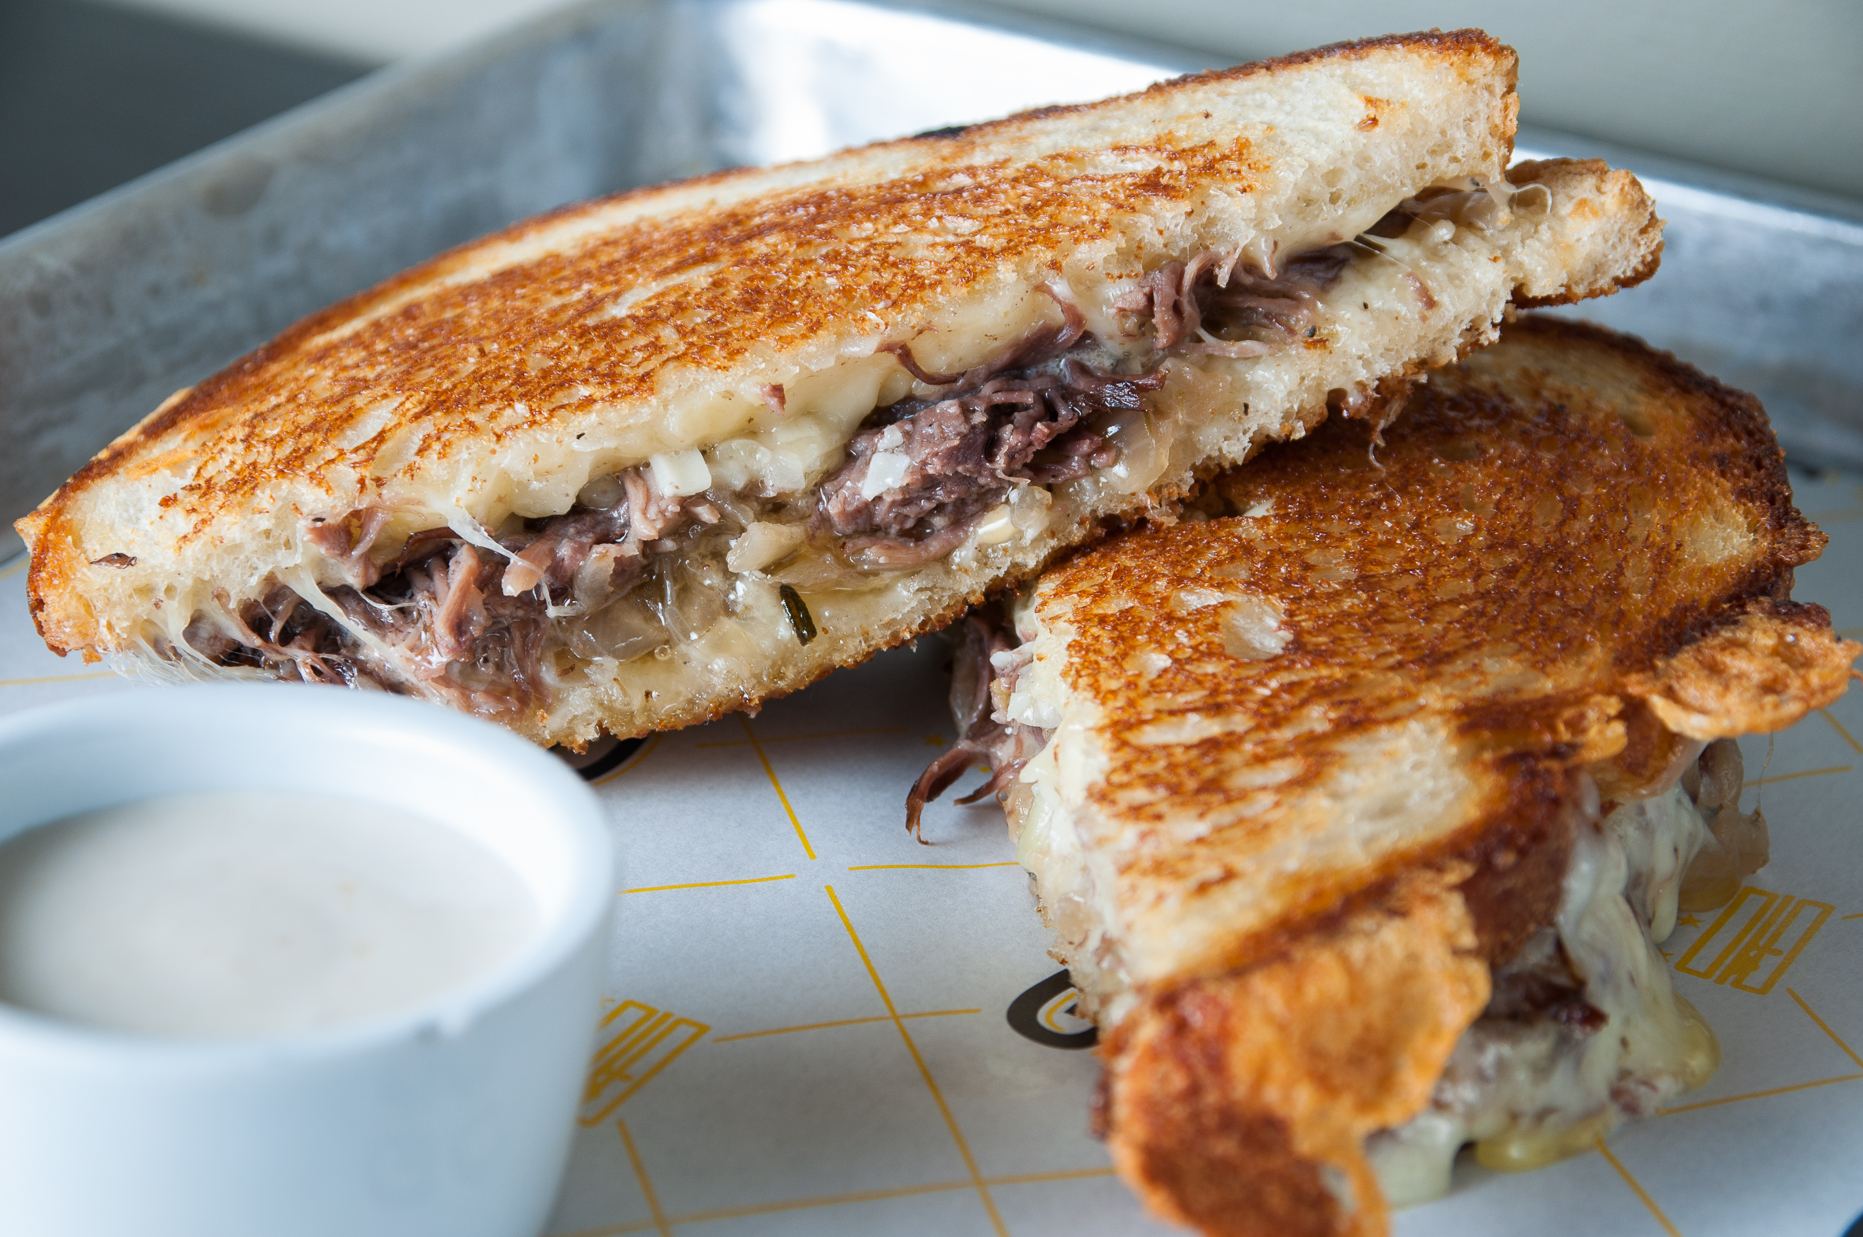 Sourdough gets packed with Gruyere, blue cheese, slow cooked short ribs, and caramelized onions. The rich 'wich arrives with a side of horseradish dip to cut super savoriness. (Image: Courtesy GCDC)